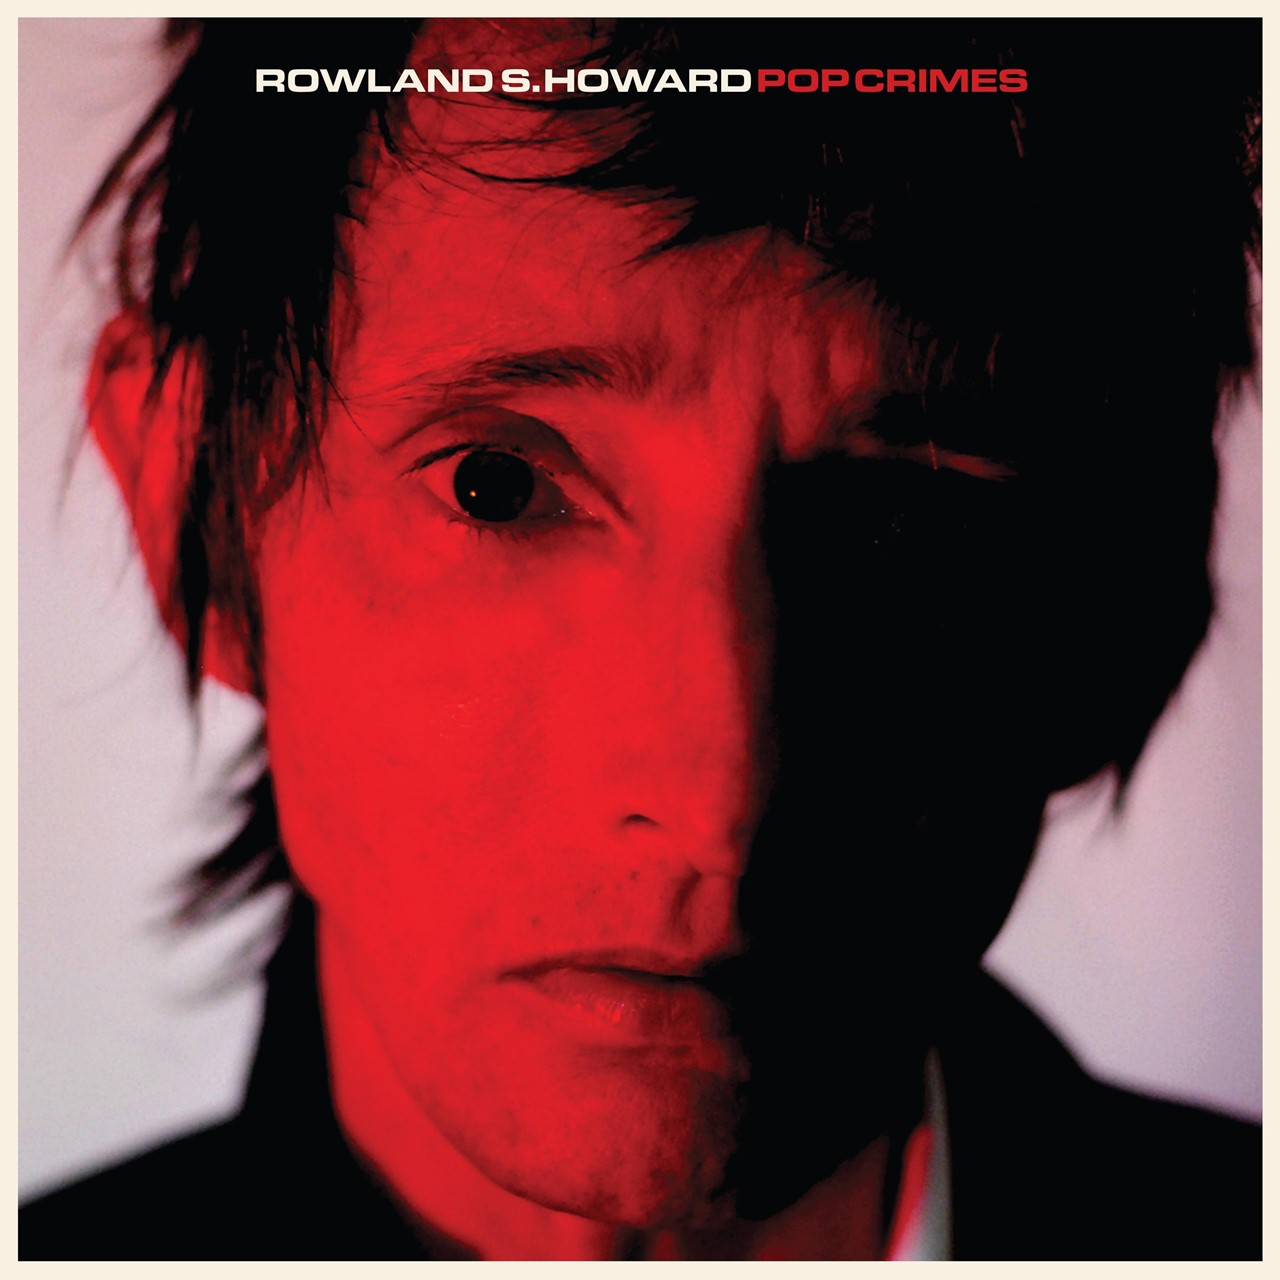 Rowland_S_Howard_Pop Crimes